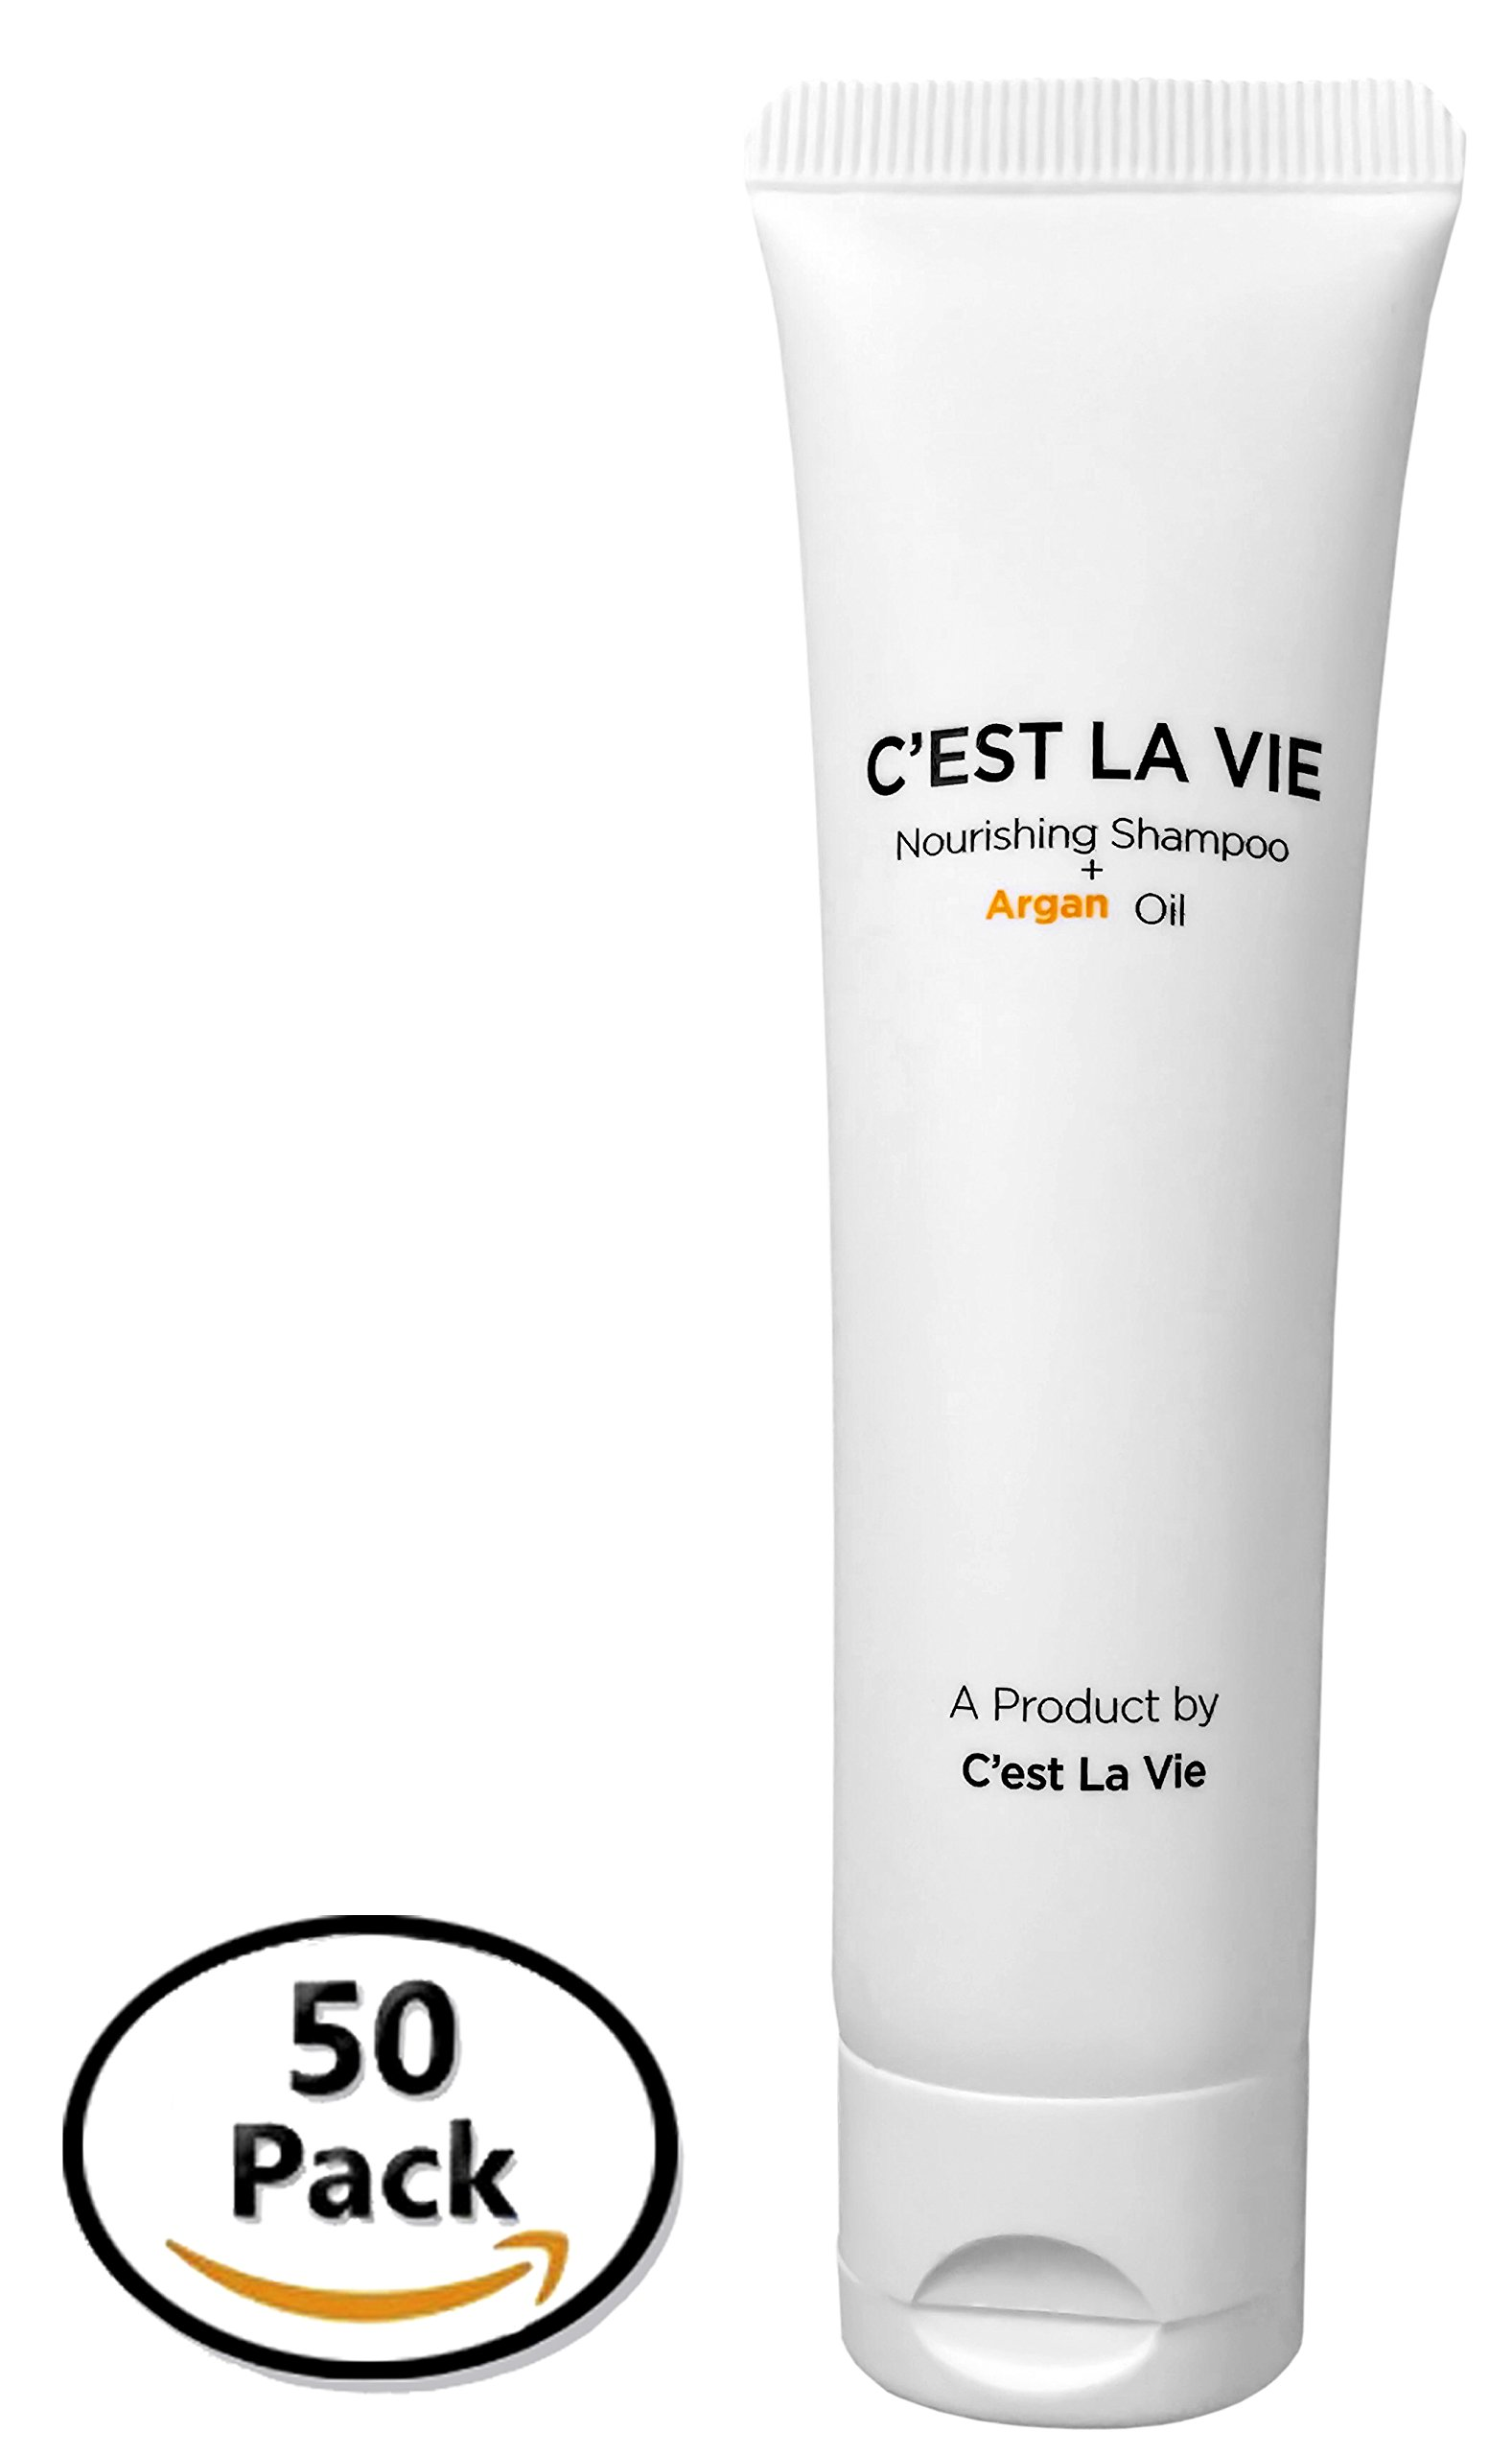 50 Bulk Pack - Nourishing Shampoo + Argan Oil By C'EST LA VIE - 40ml / 1.35 fl oz - Travel Guest & Hotel Amenities - Individual Tubes in Eco Responsible Packaging. Paraben & Cruelty Free (white) by CEST LA VIE